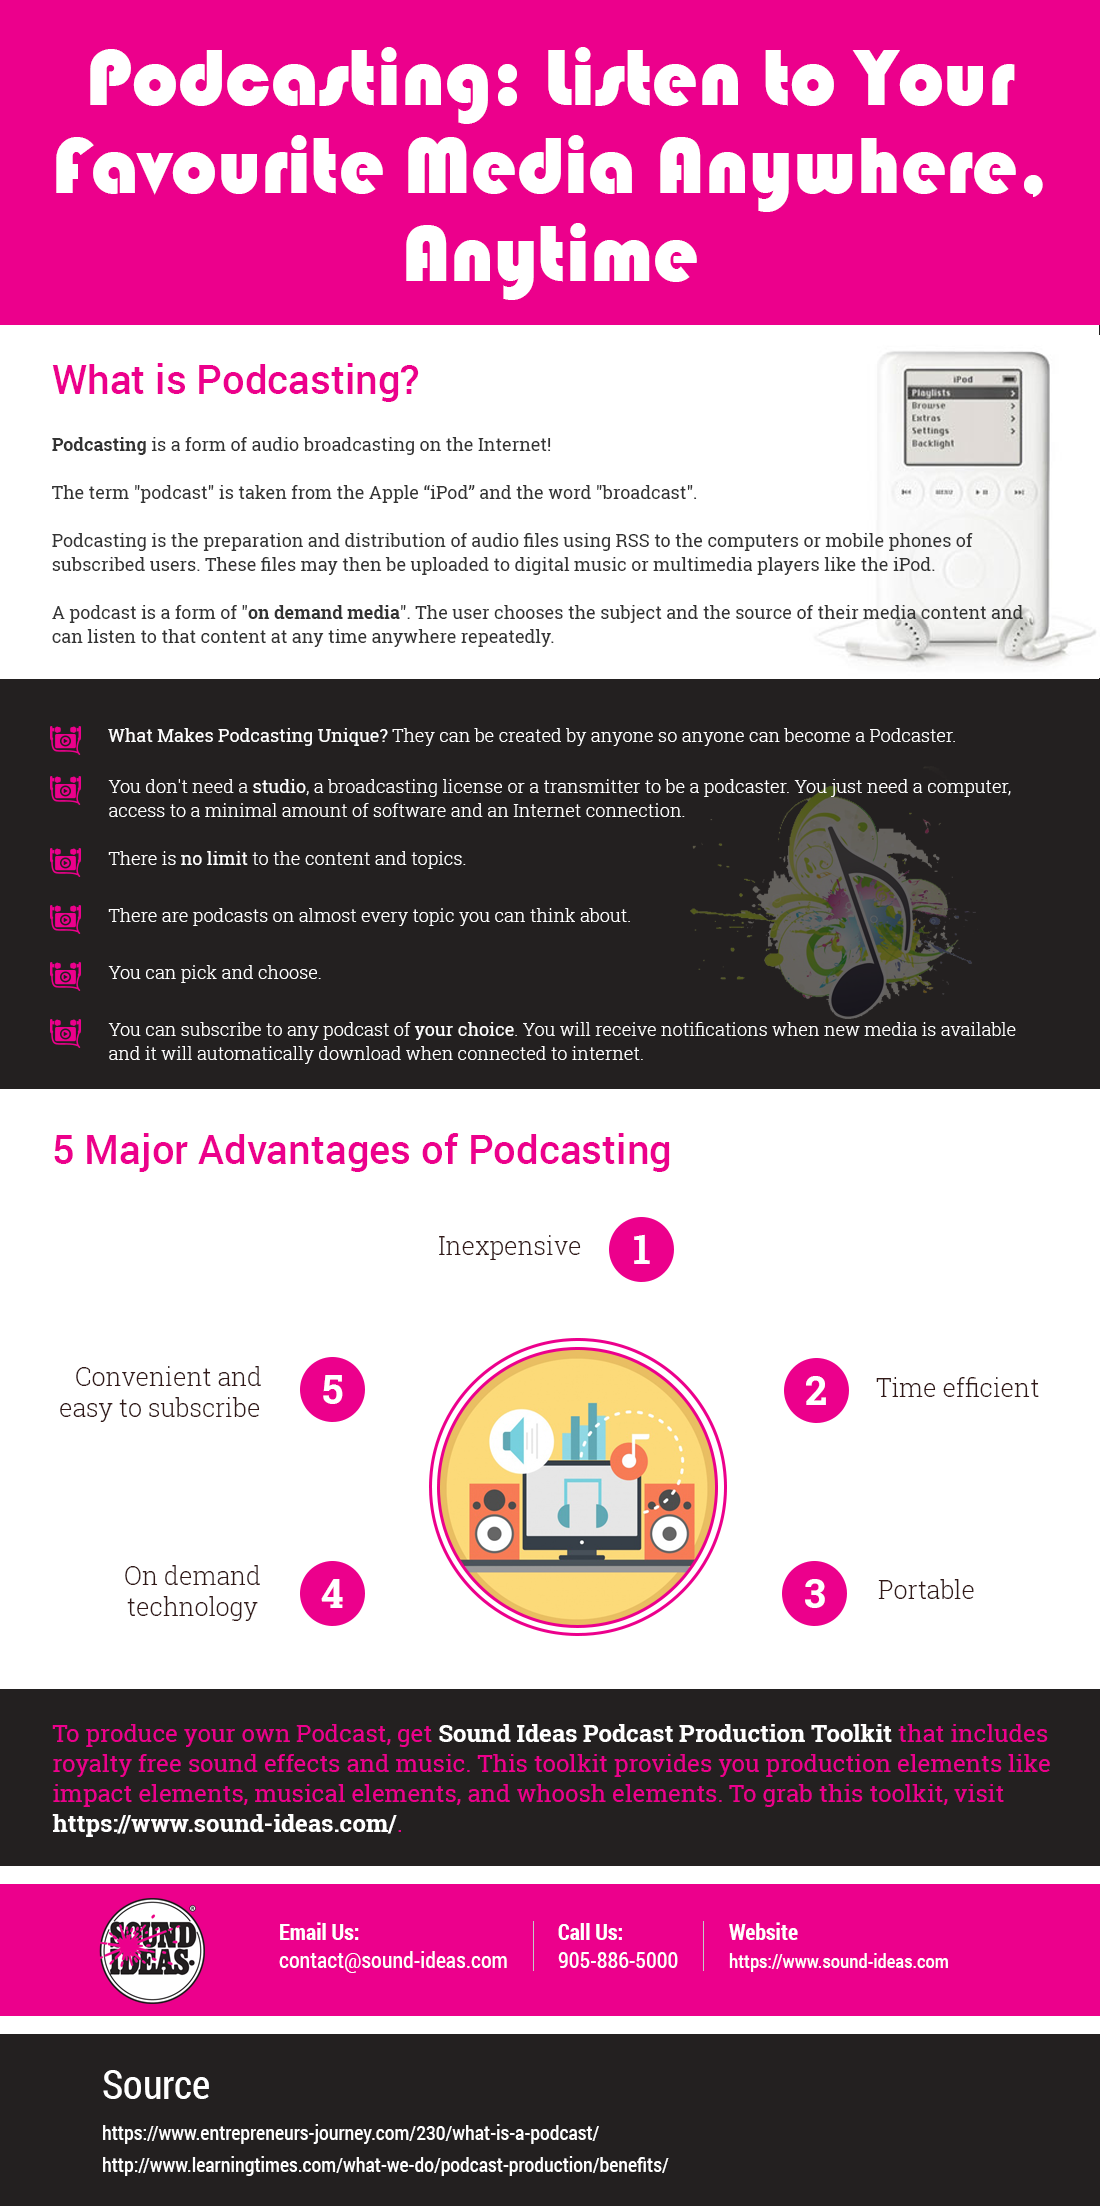 Podcasting Listen to Your Favourite Media Anywhere